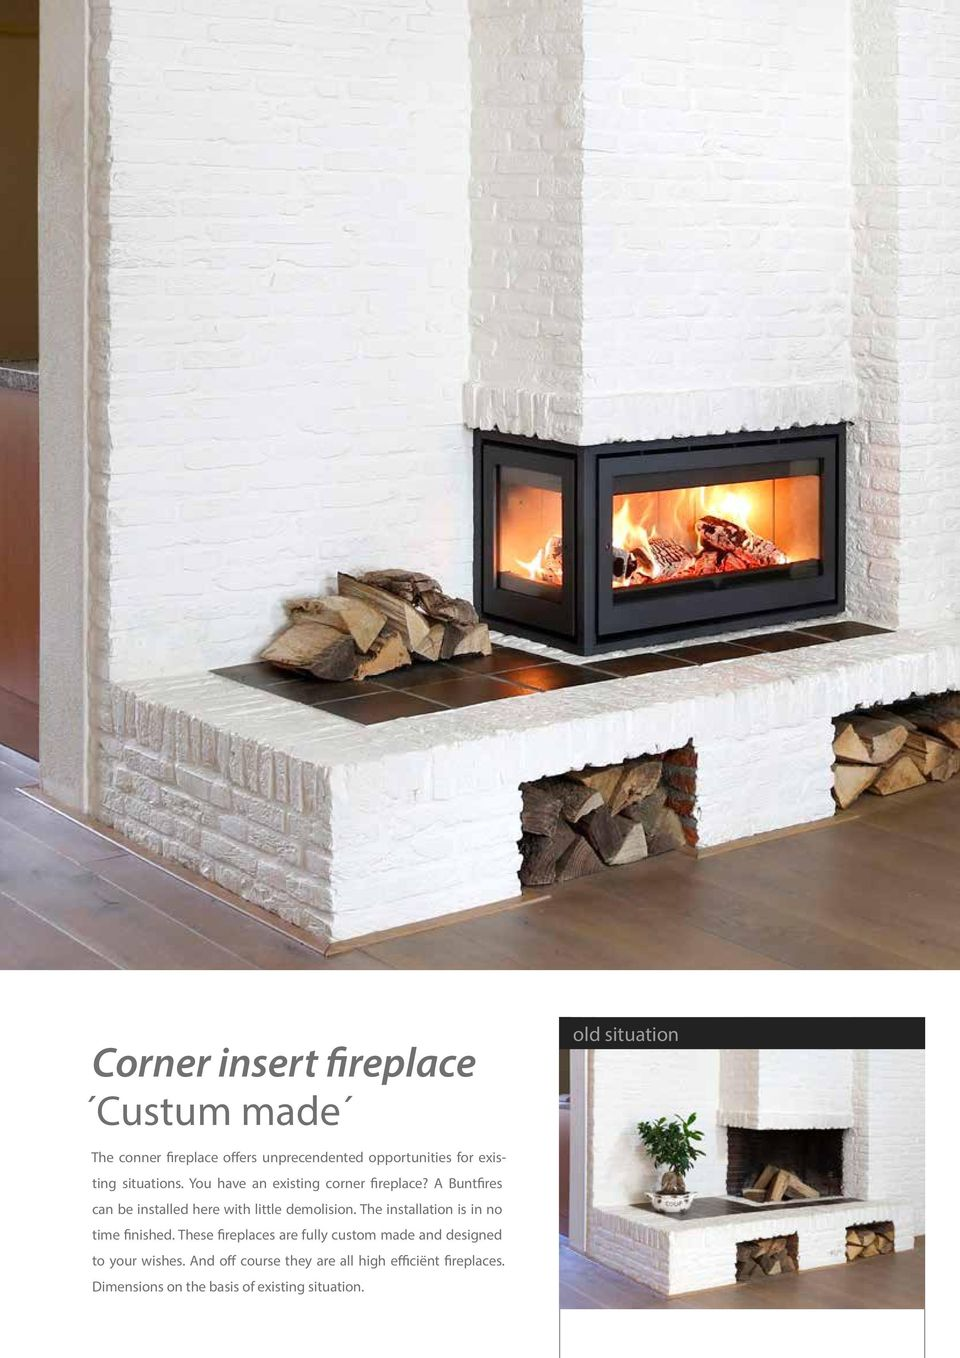 A Buntfires can be installed here with little demolision. The installation is in no time finished.